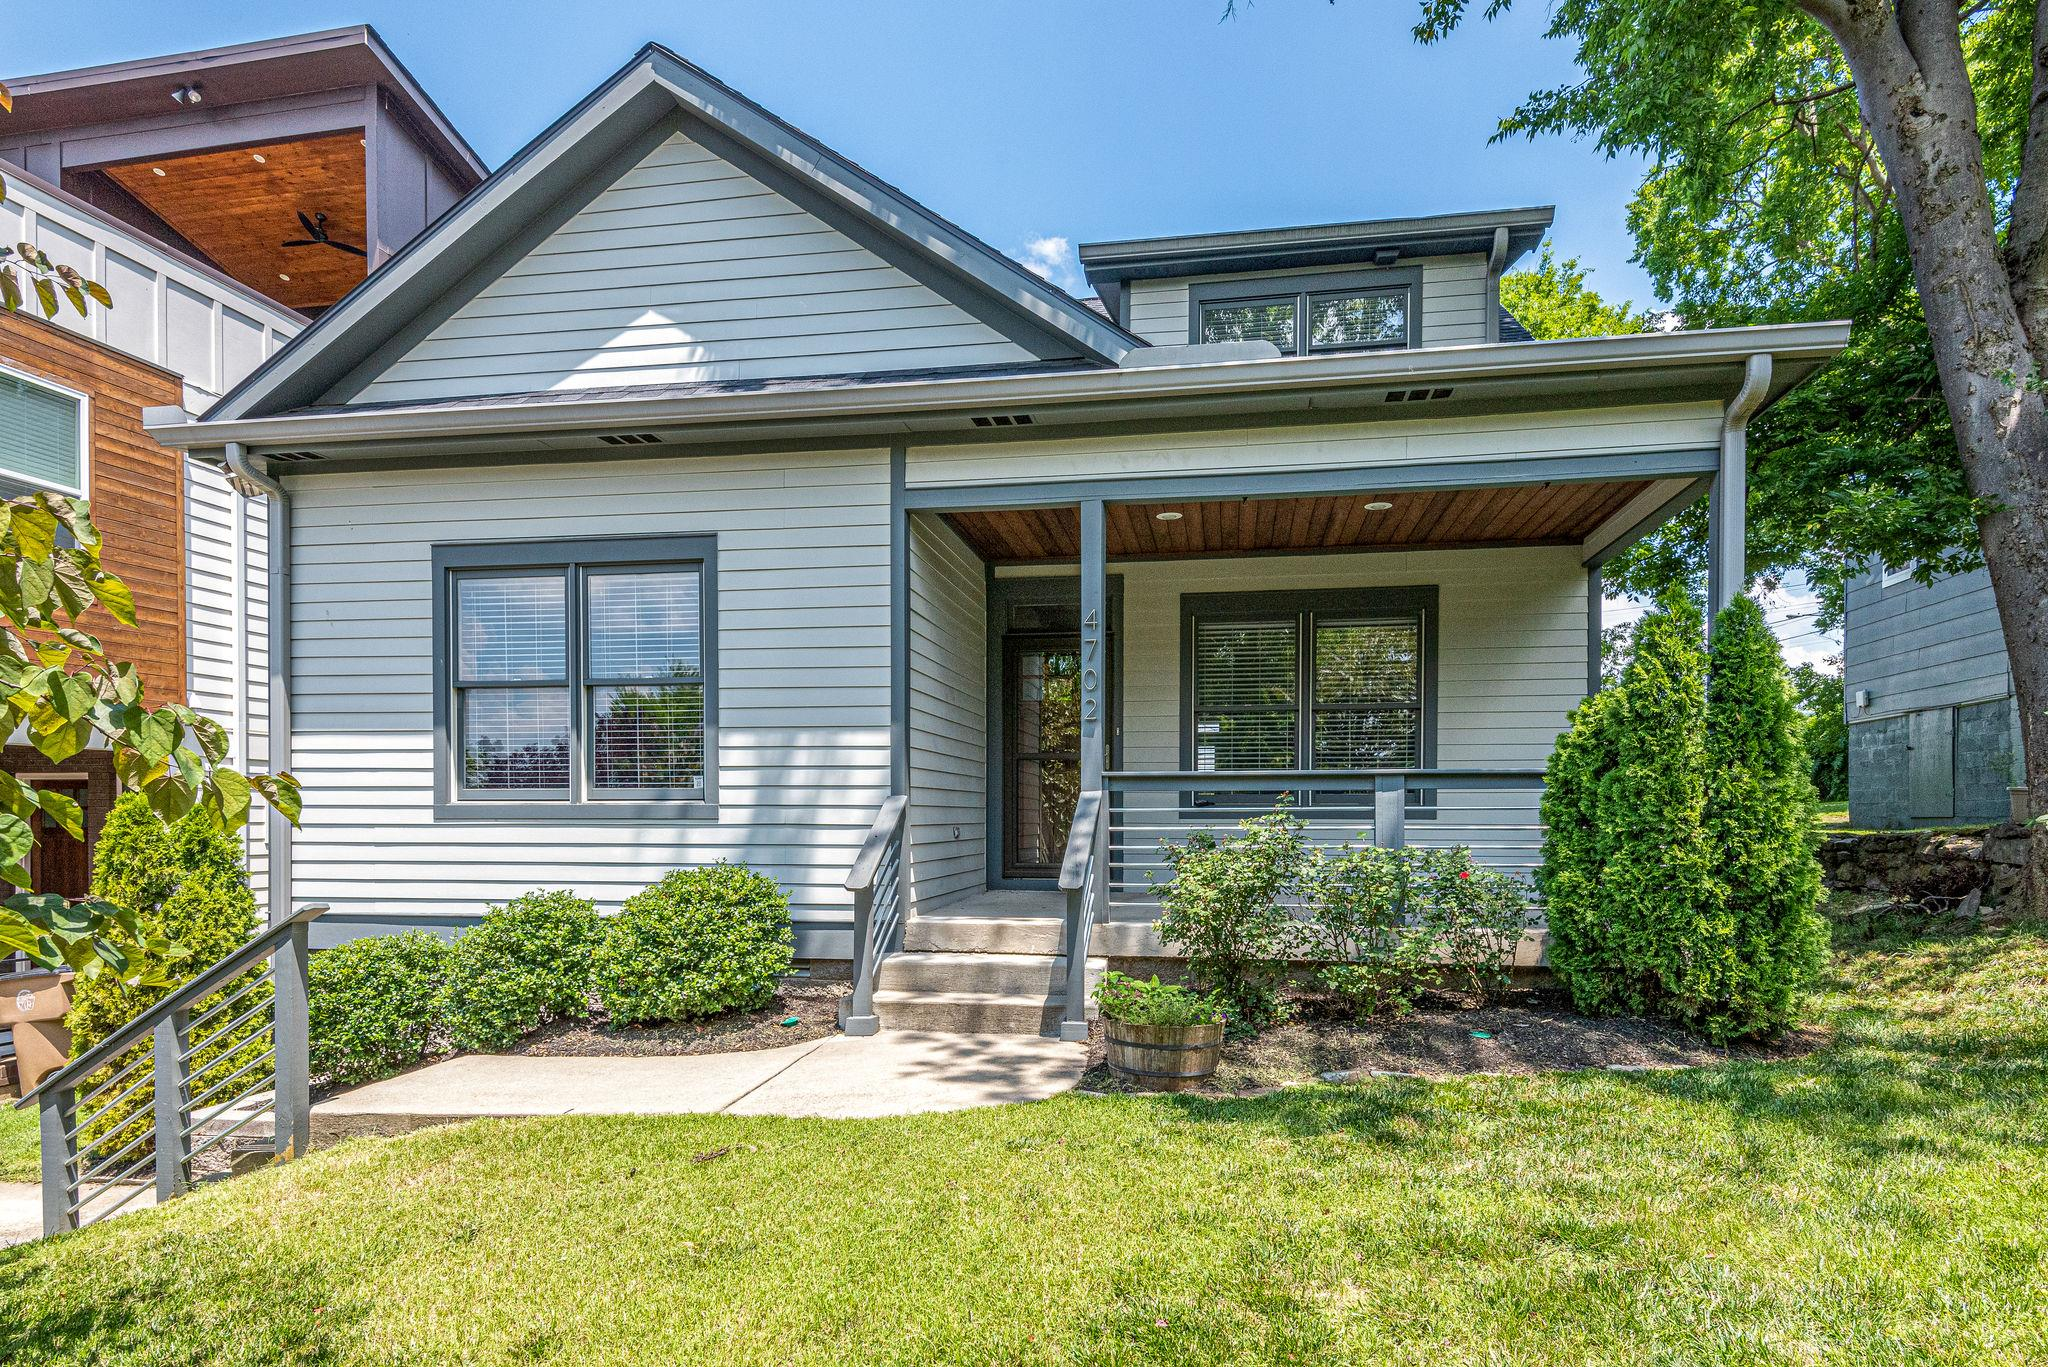 4702 Kentucky Ave, Nashville, TN 37209 - Nashville, TN real estate listing